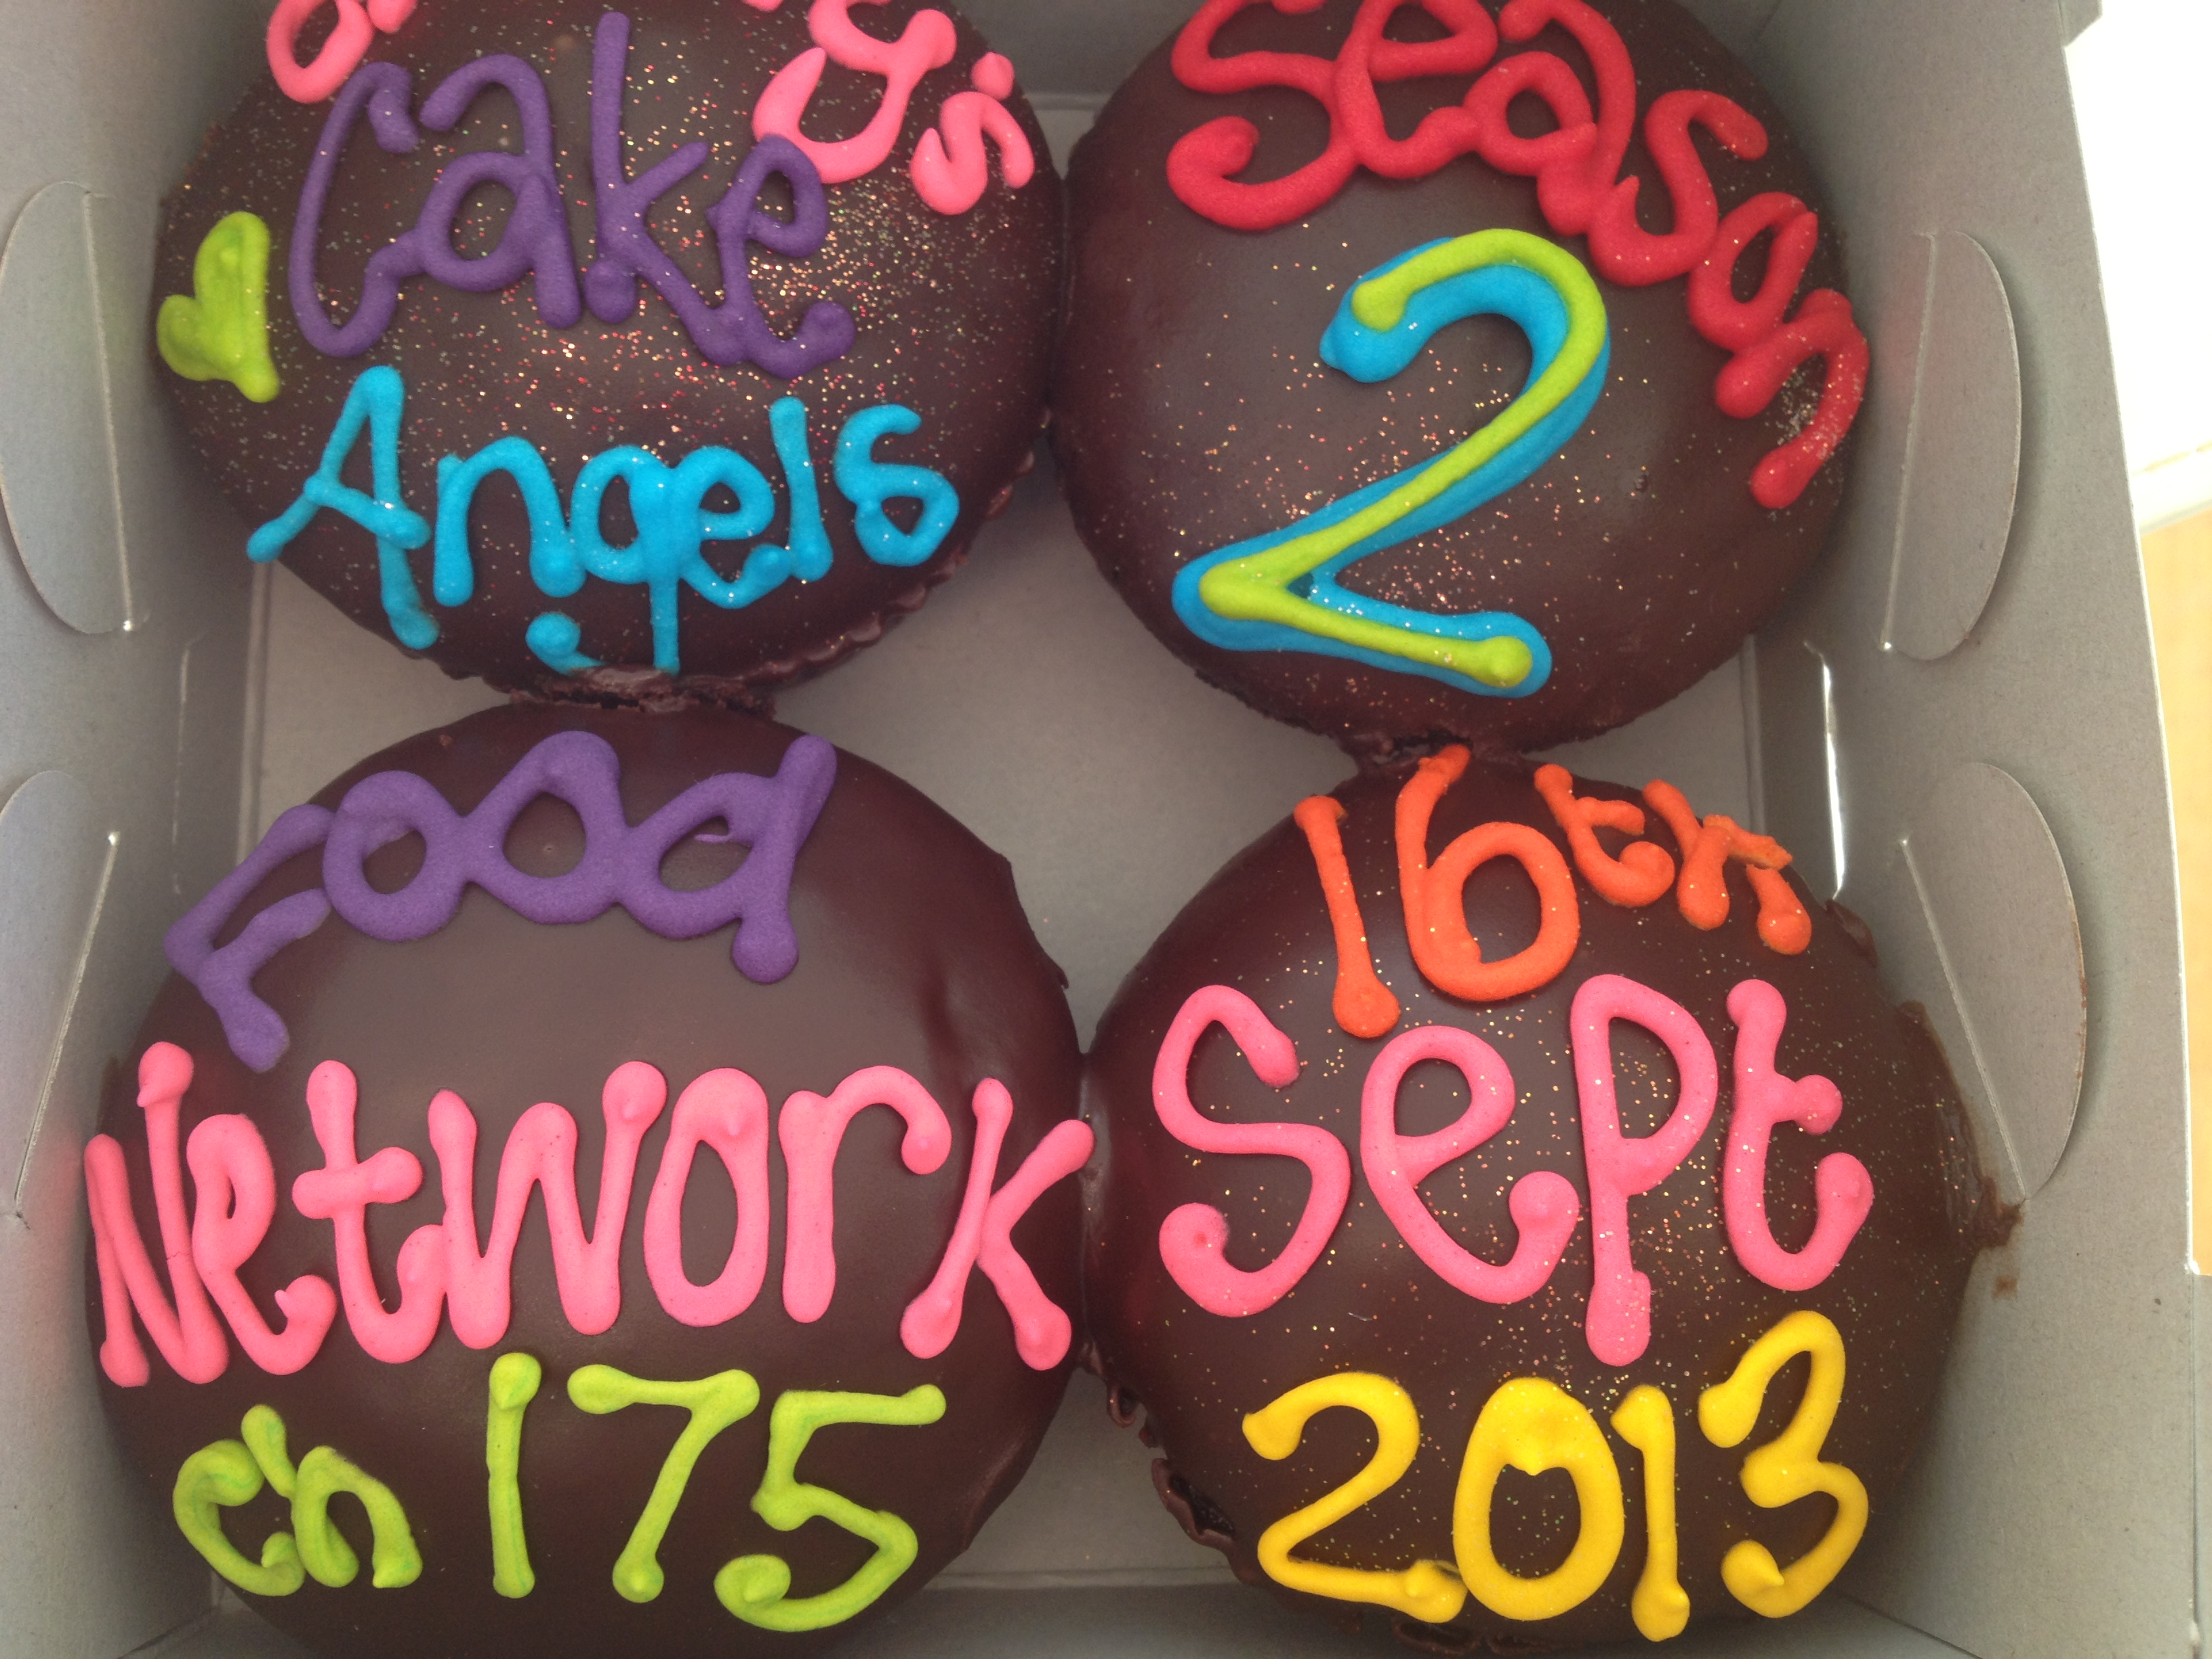 Charlys Bakery Charlys Cake Angels Season 2 baking from today